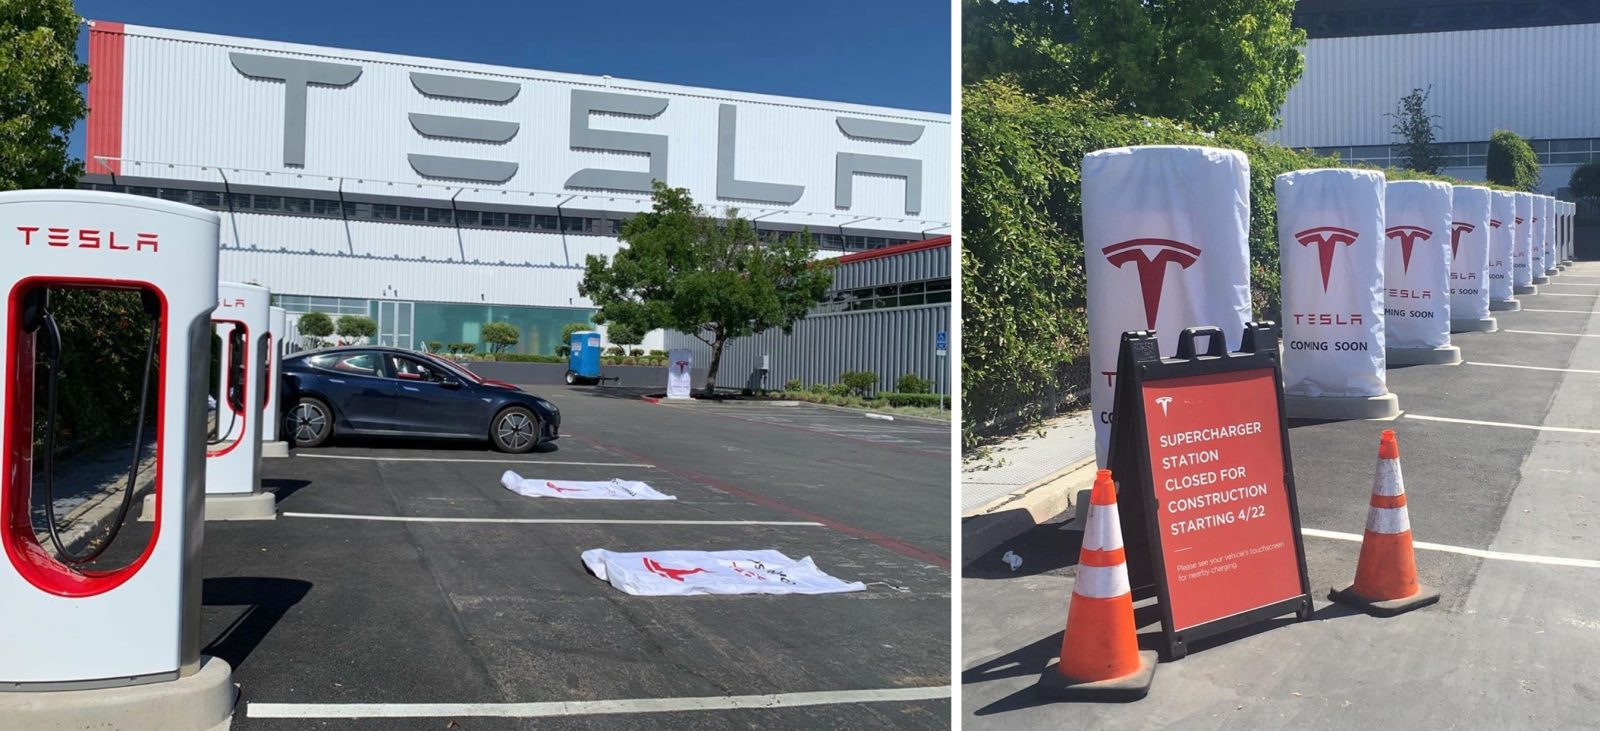 Tesla opens first public Supercharger V3 250kW station to its fleet